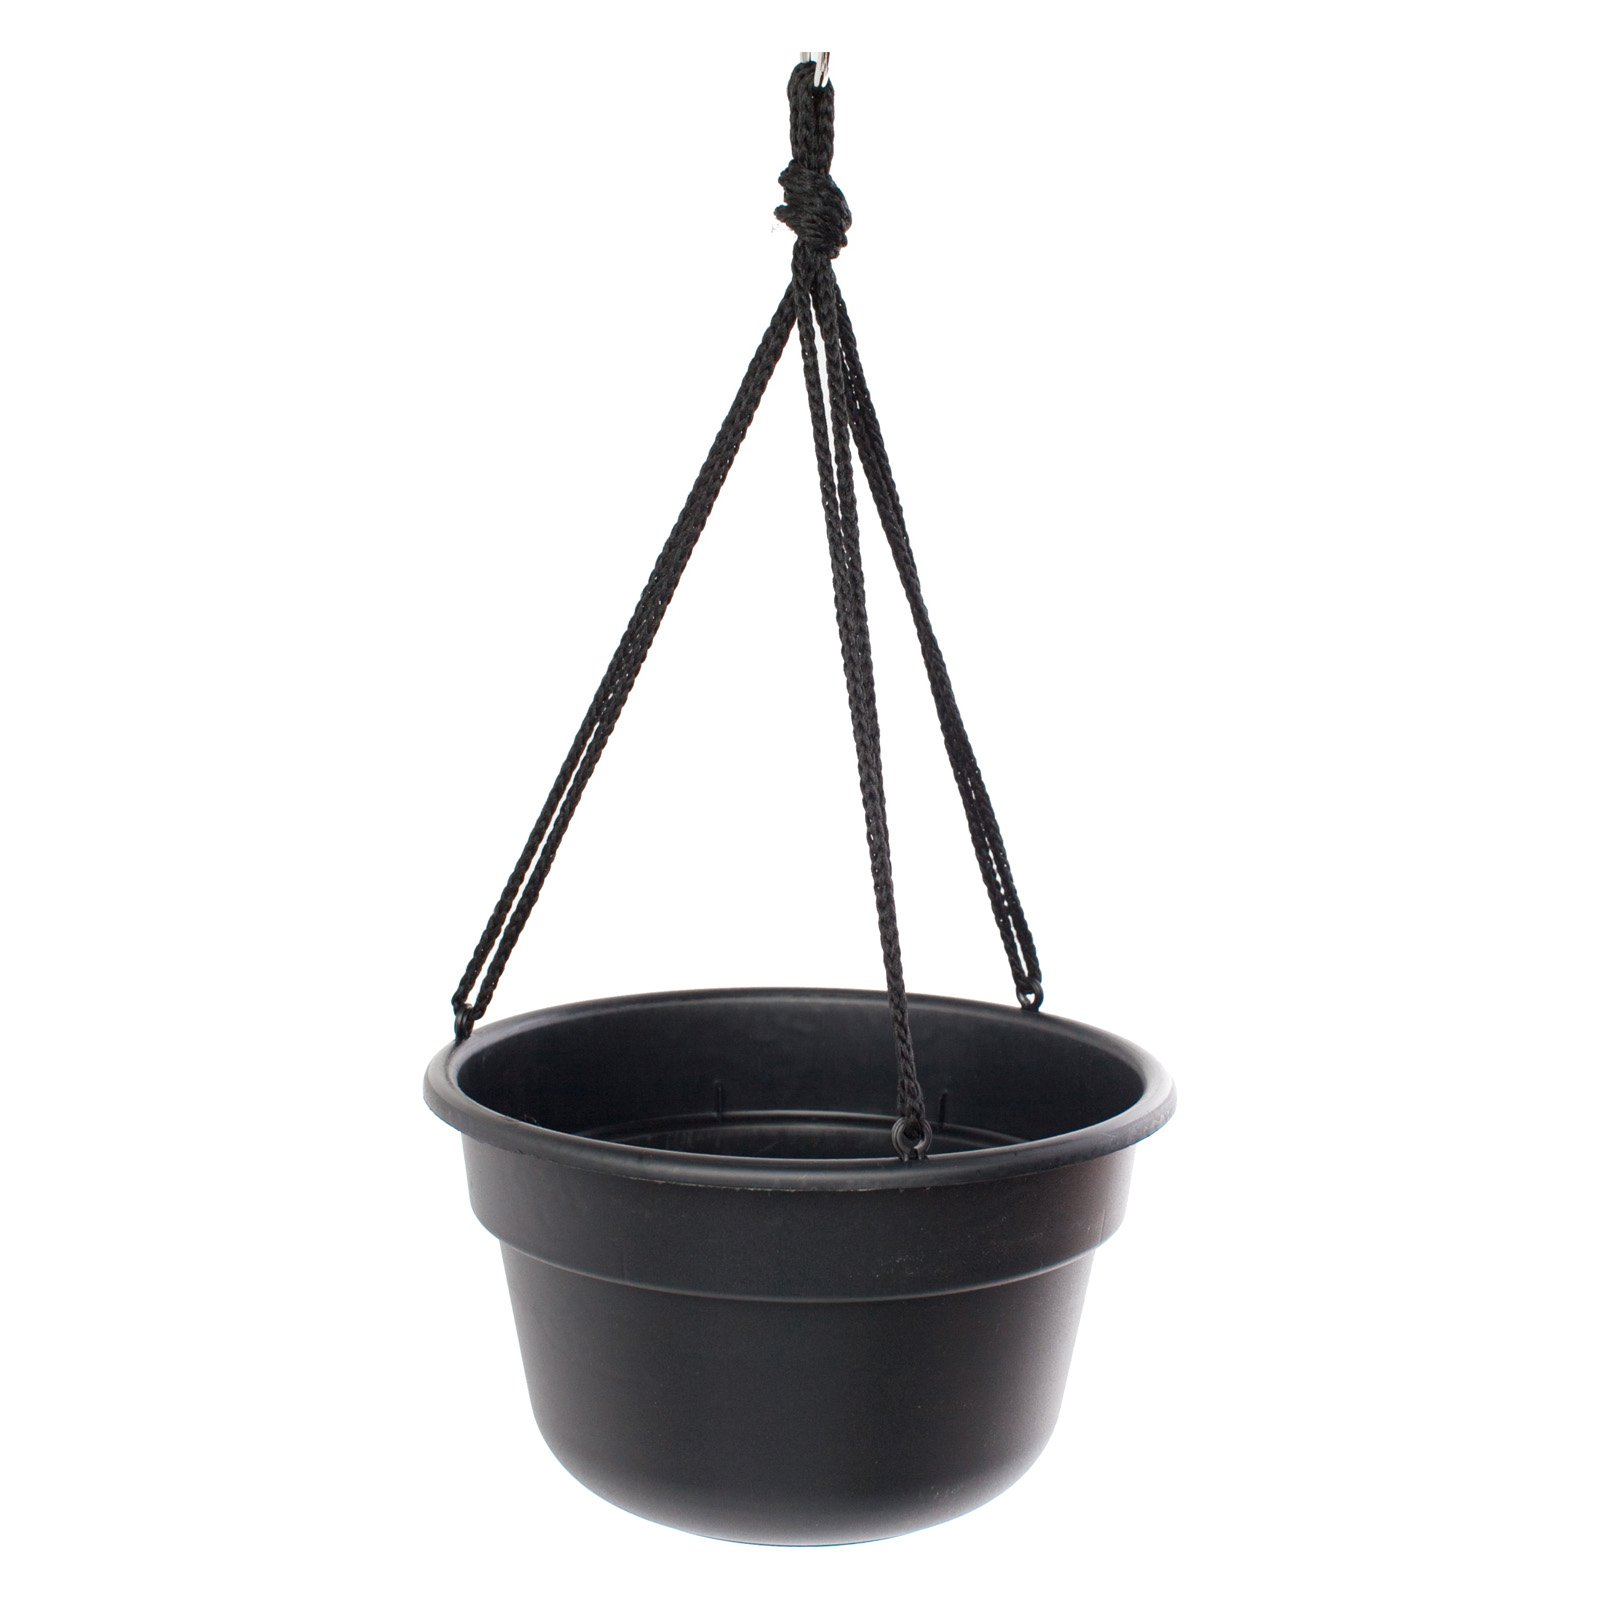 Bloem Dura Cotta Plastic Hanging Basket Planter - Set of 12